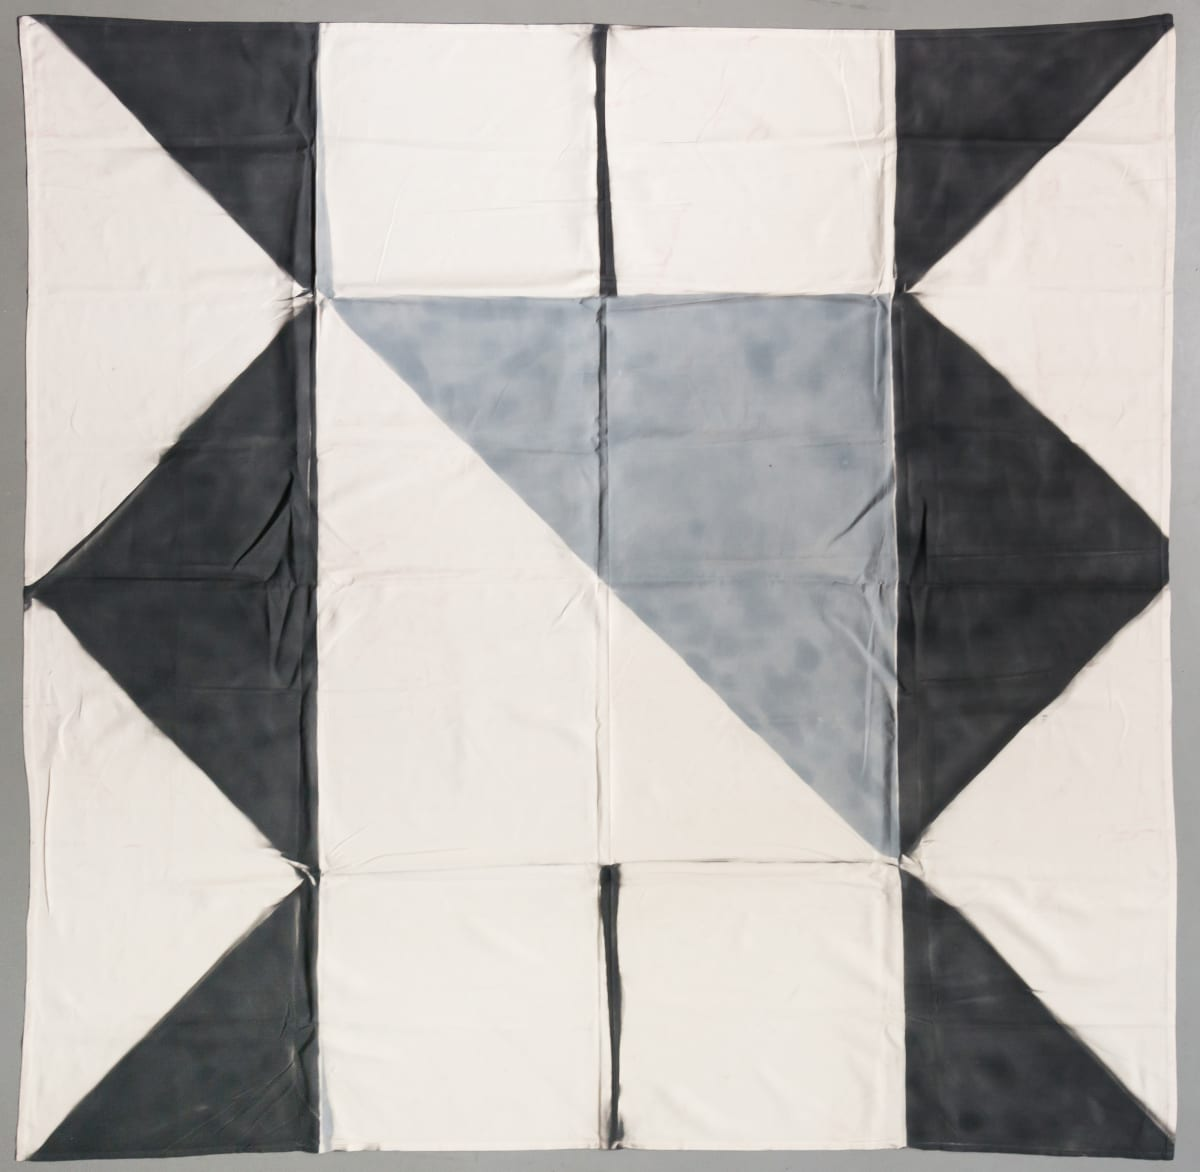 ANDRE-PIERRE ARNAL, Toile libre, 1971